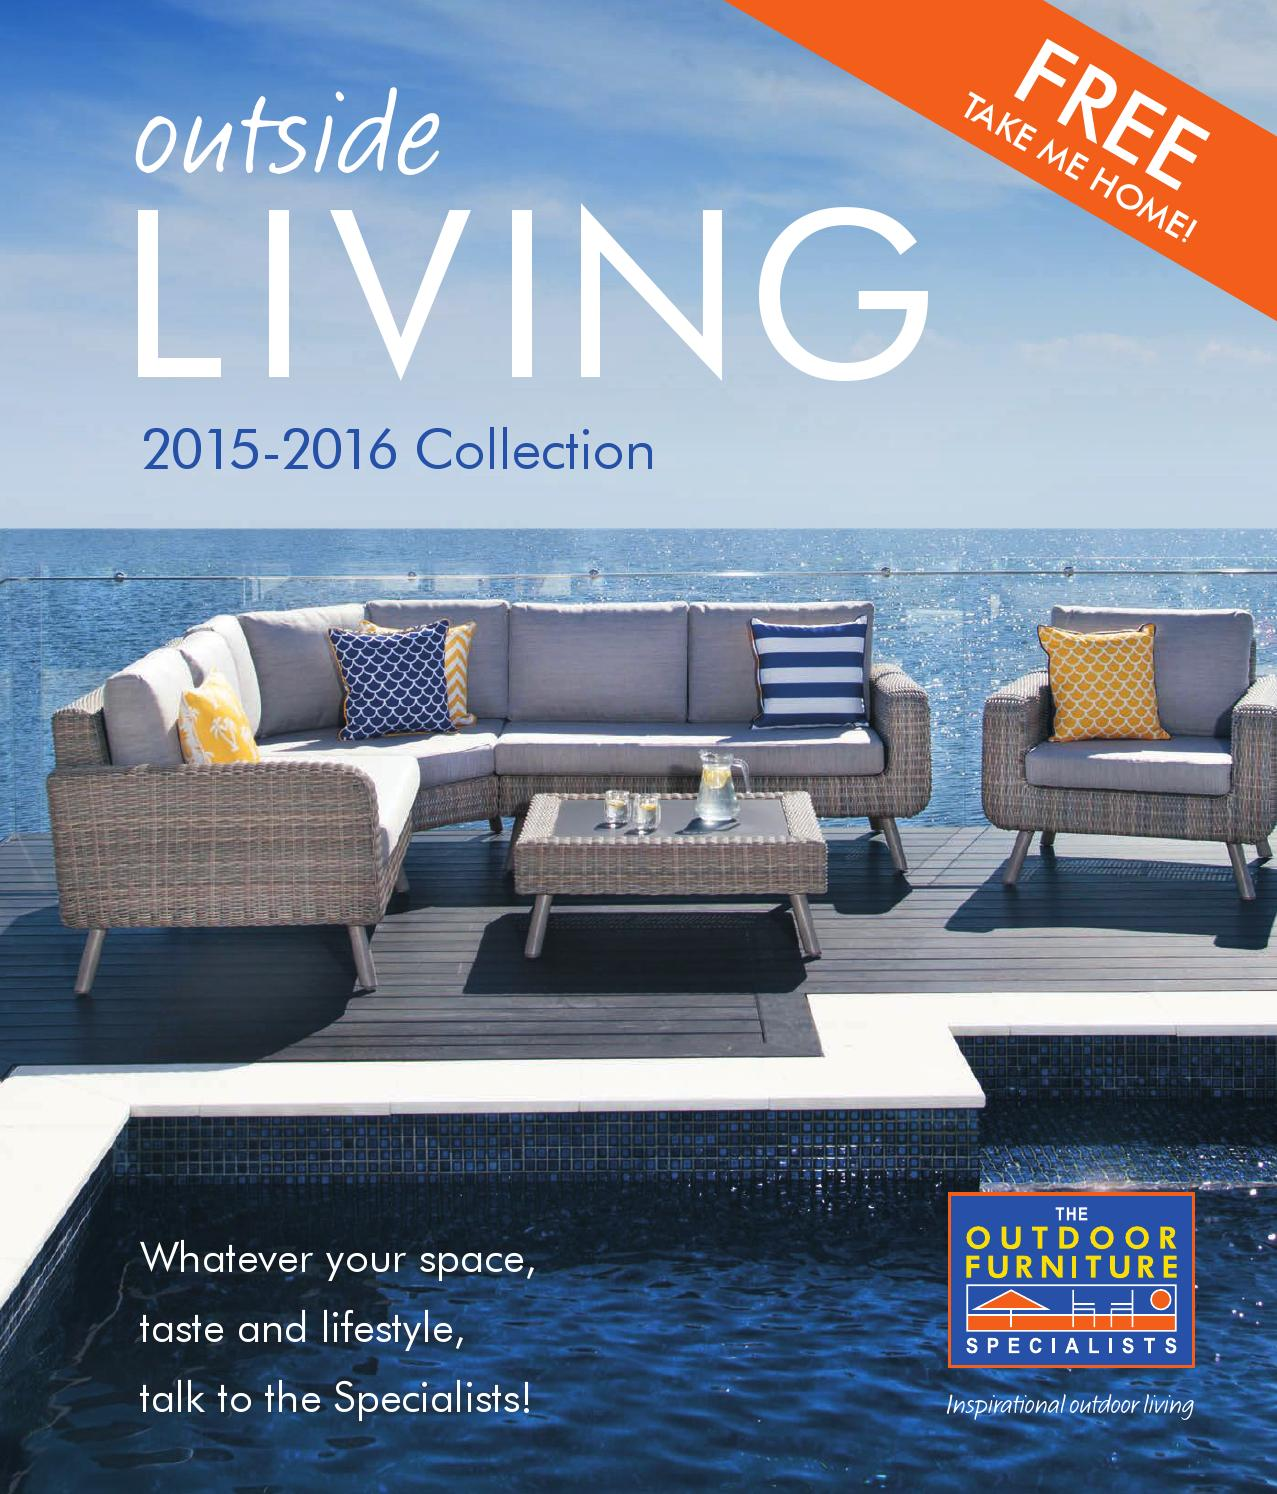 Captivating Catalogue 2015 2016: The Outdoor Furniture Specialists By TOFS: The Outdoor  Furniture Specialists   Issuu Part 3